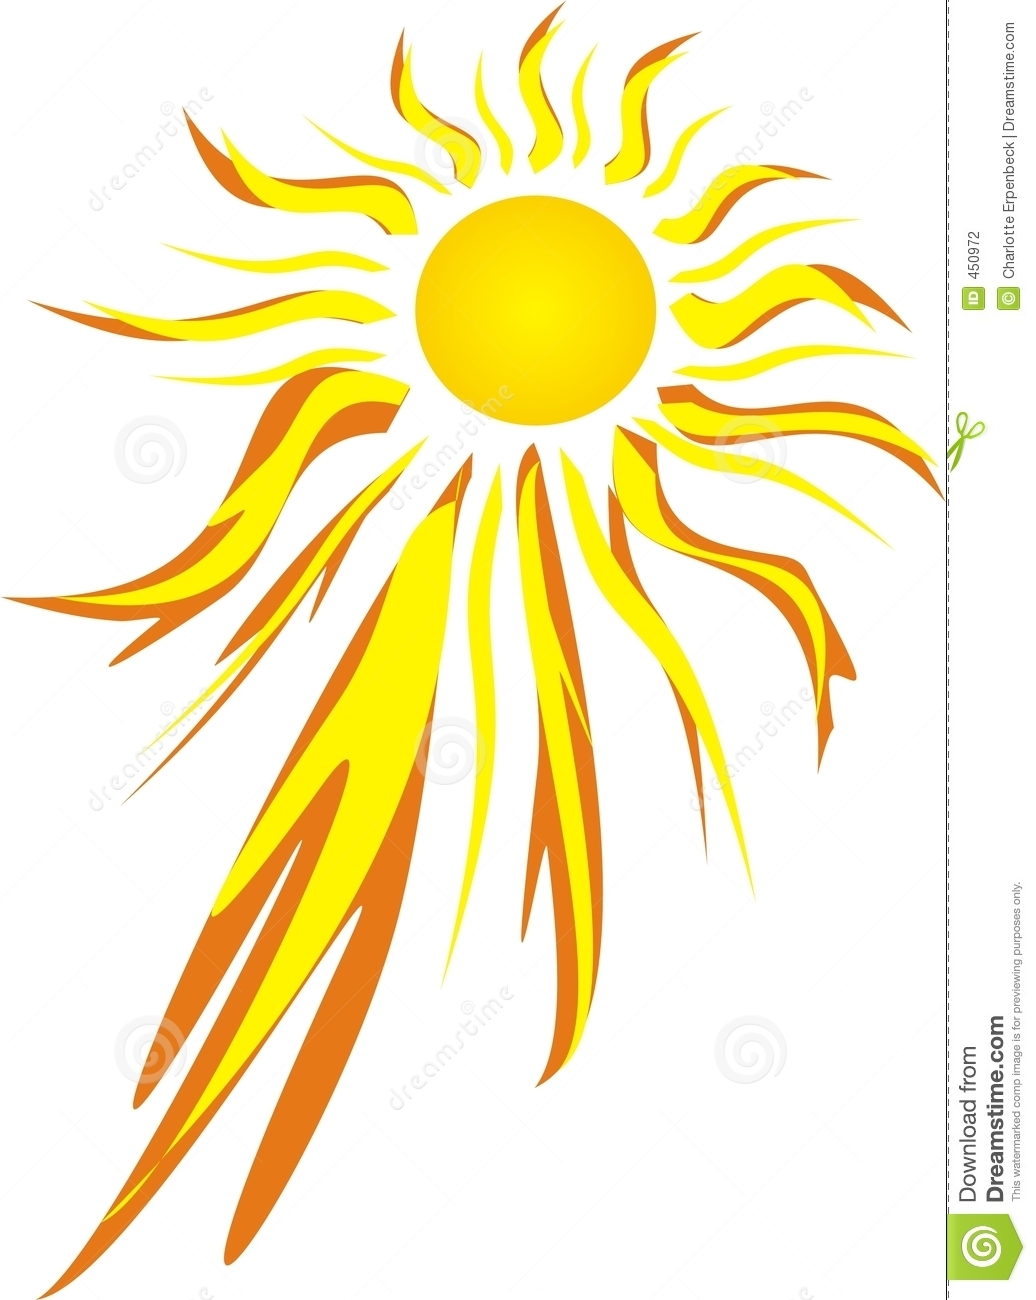 Burning sun clipart.